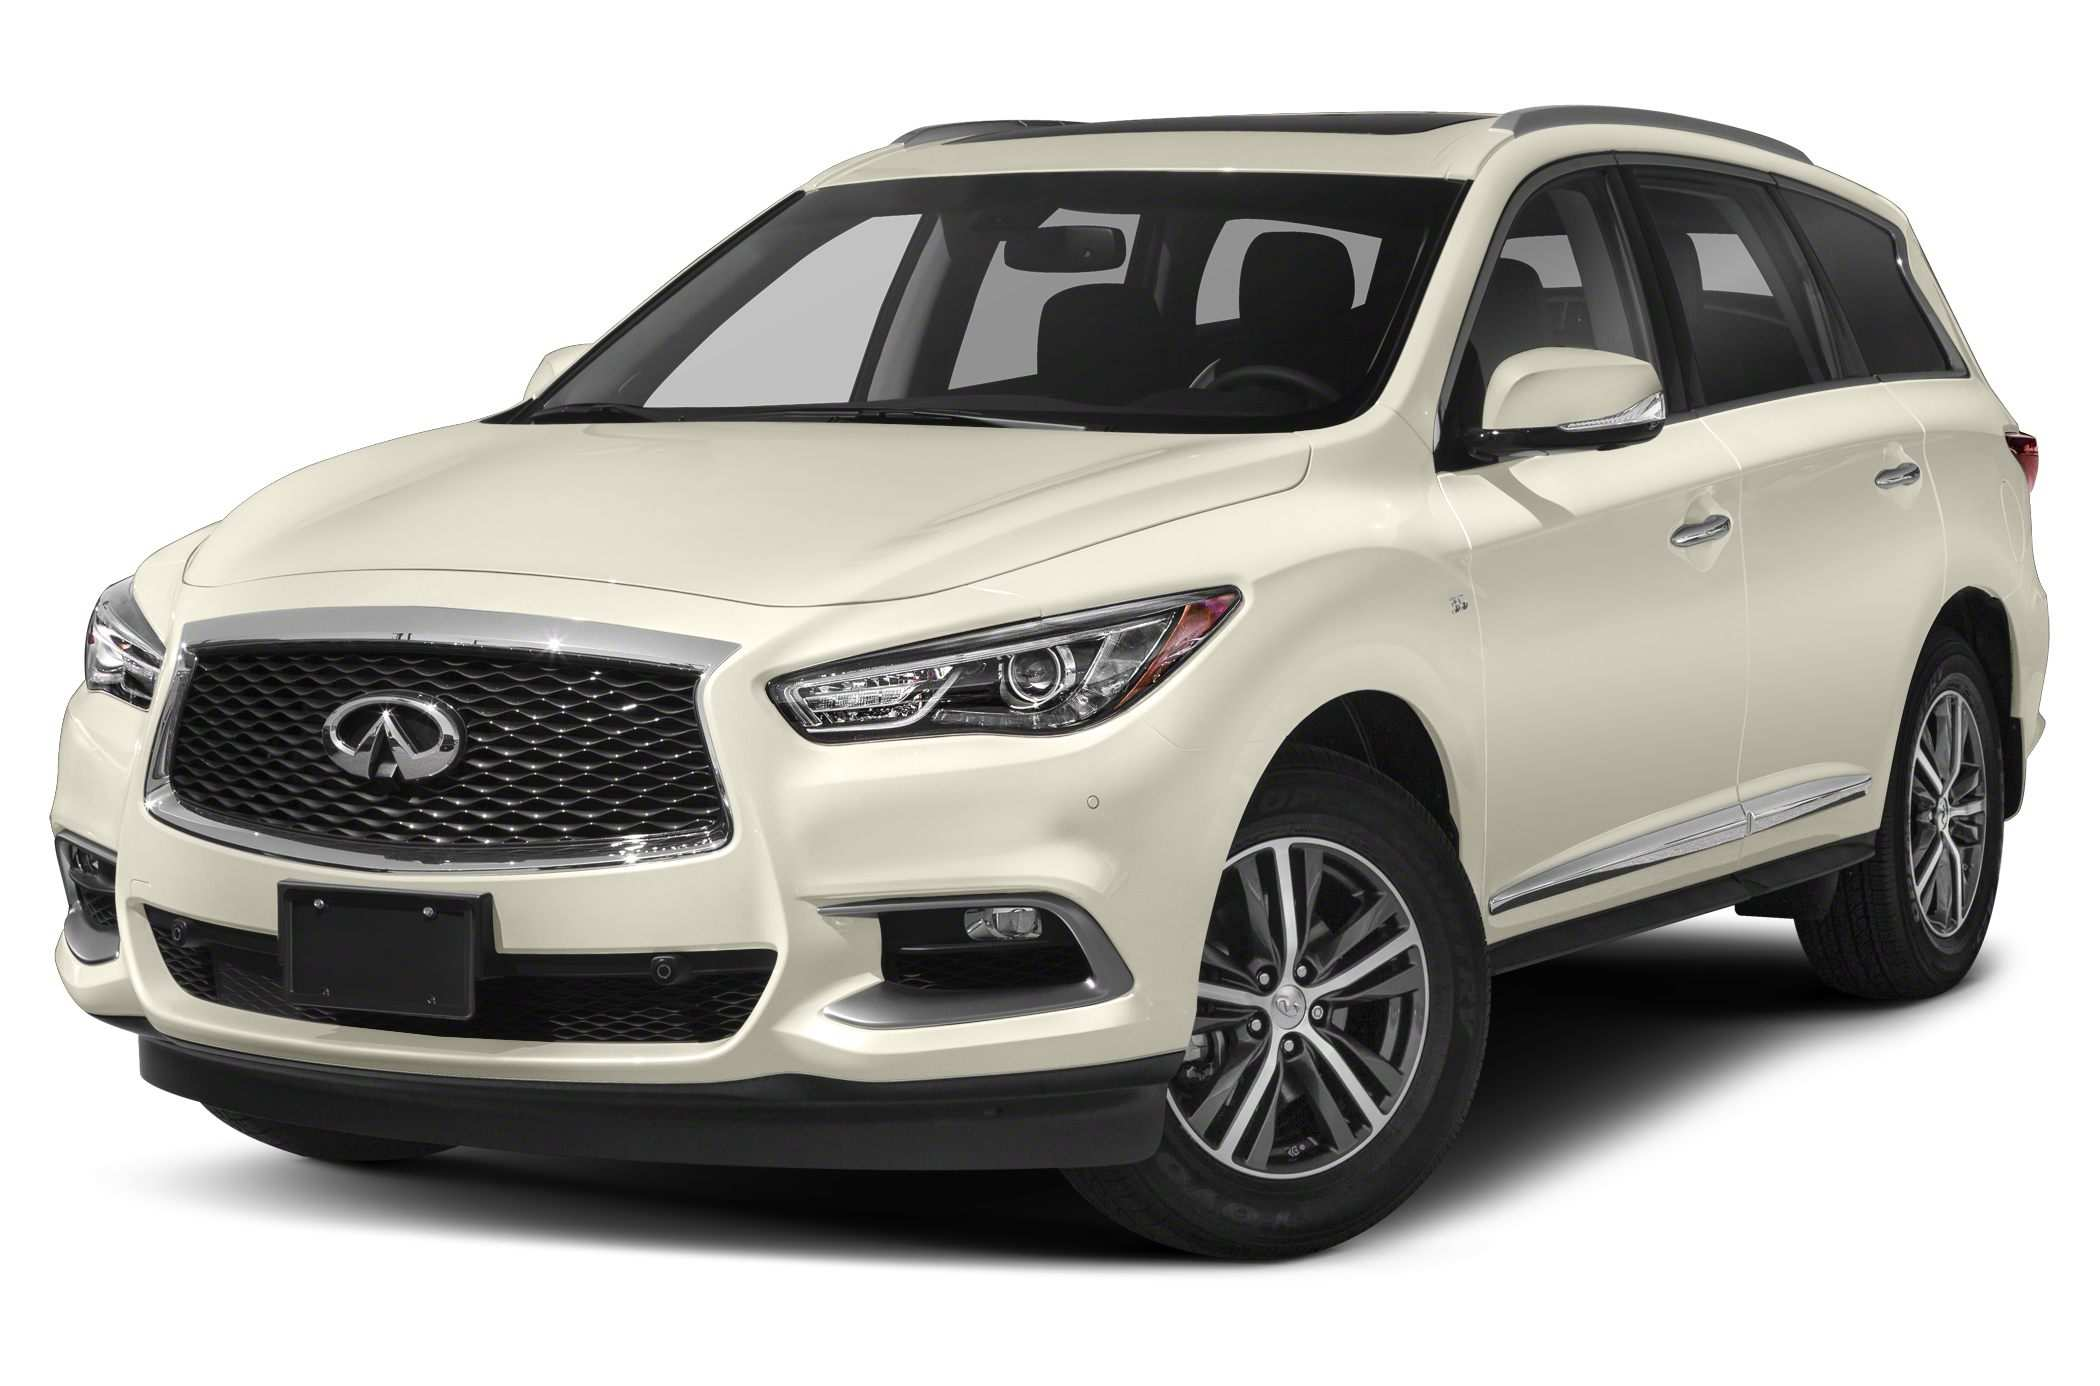 39 Great The 2019 Infiniti Qx60 Trim Levels Release Specs for The 2019 Infiniti Qx60 Trim Levels Release